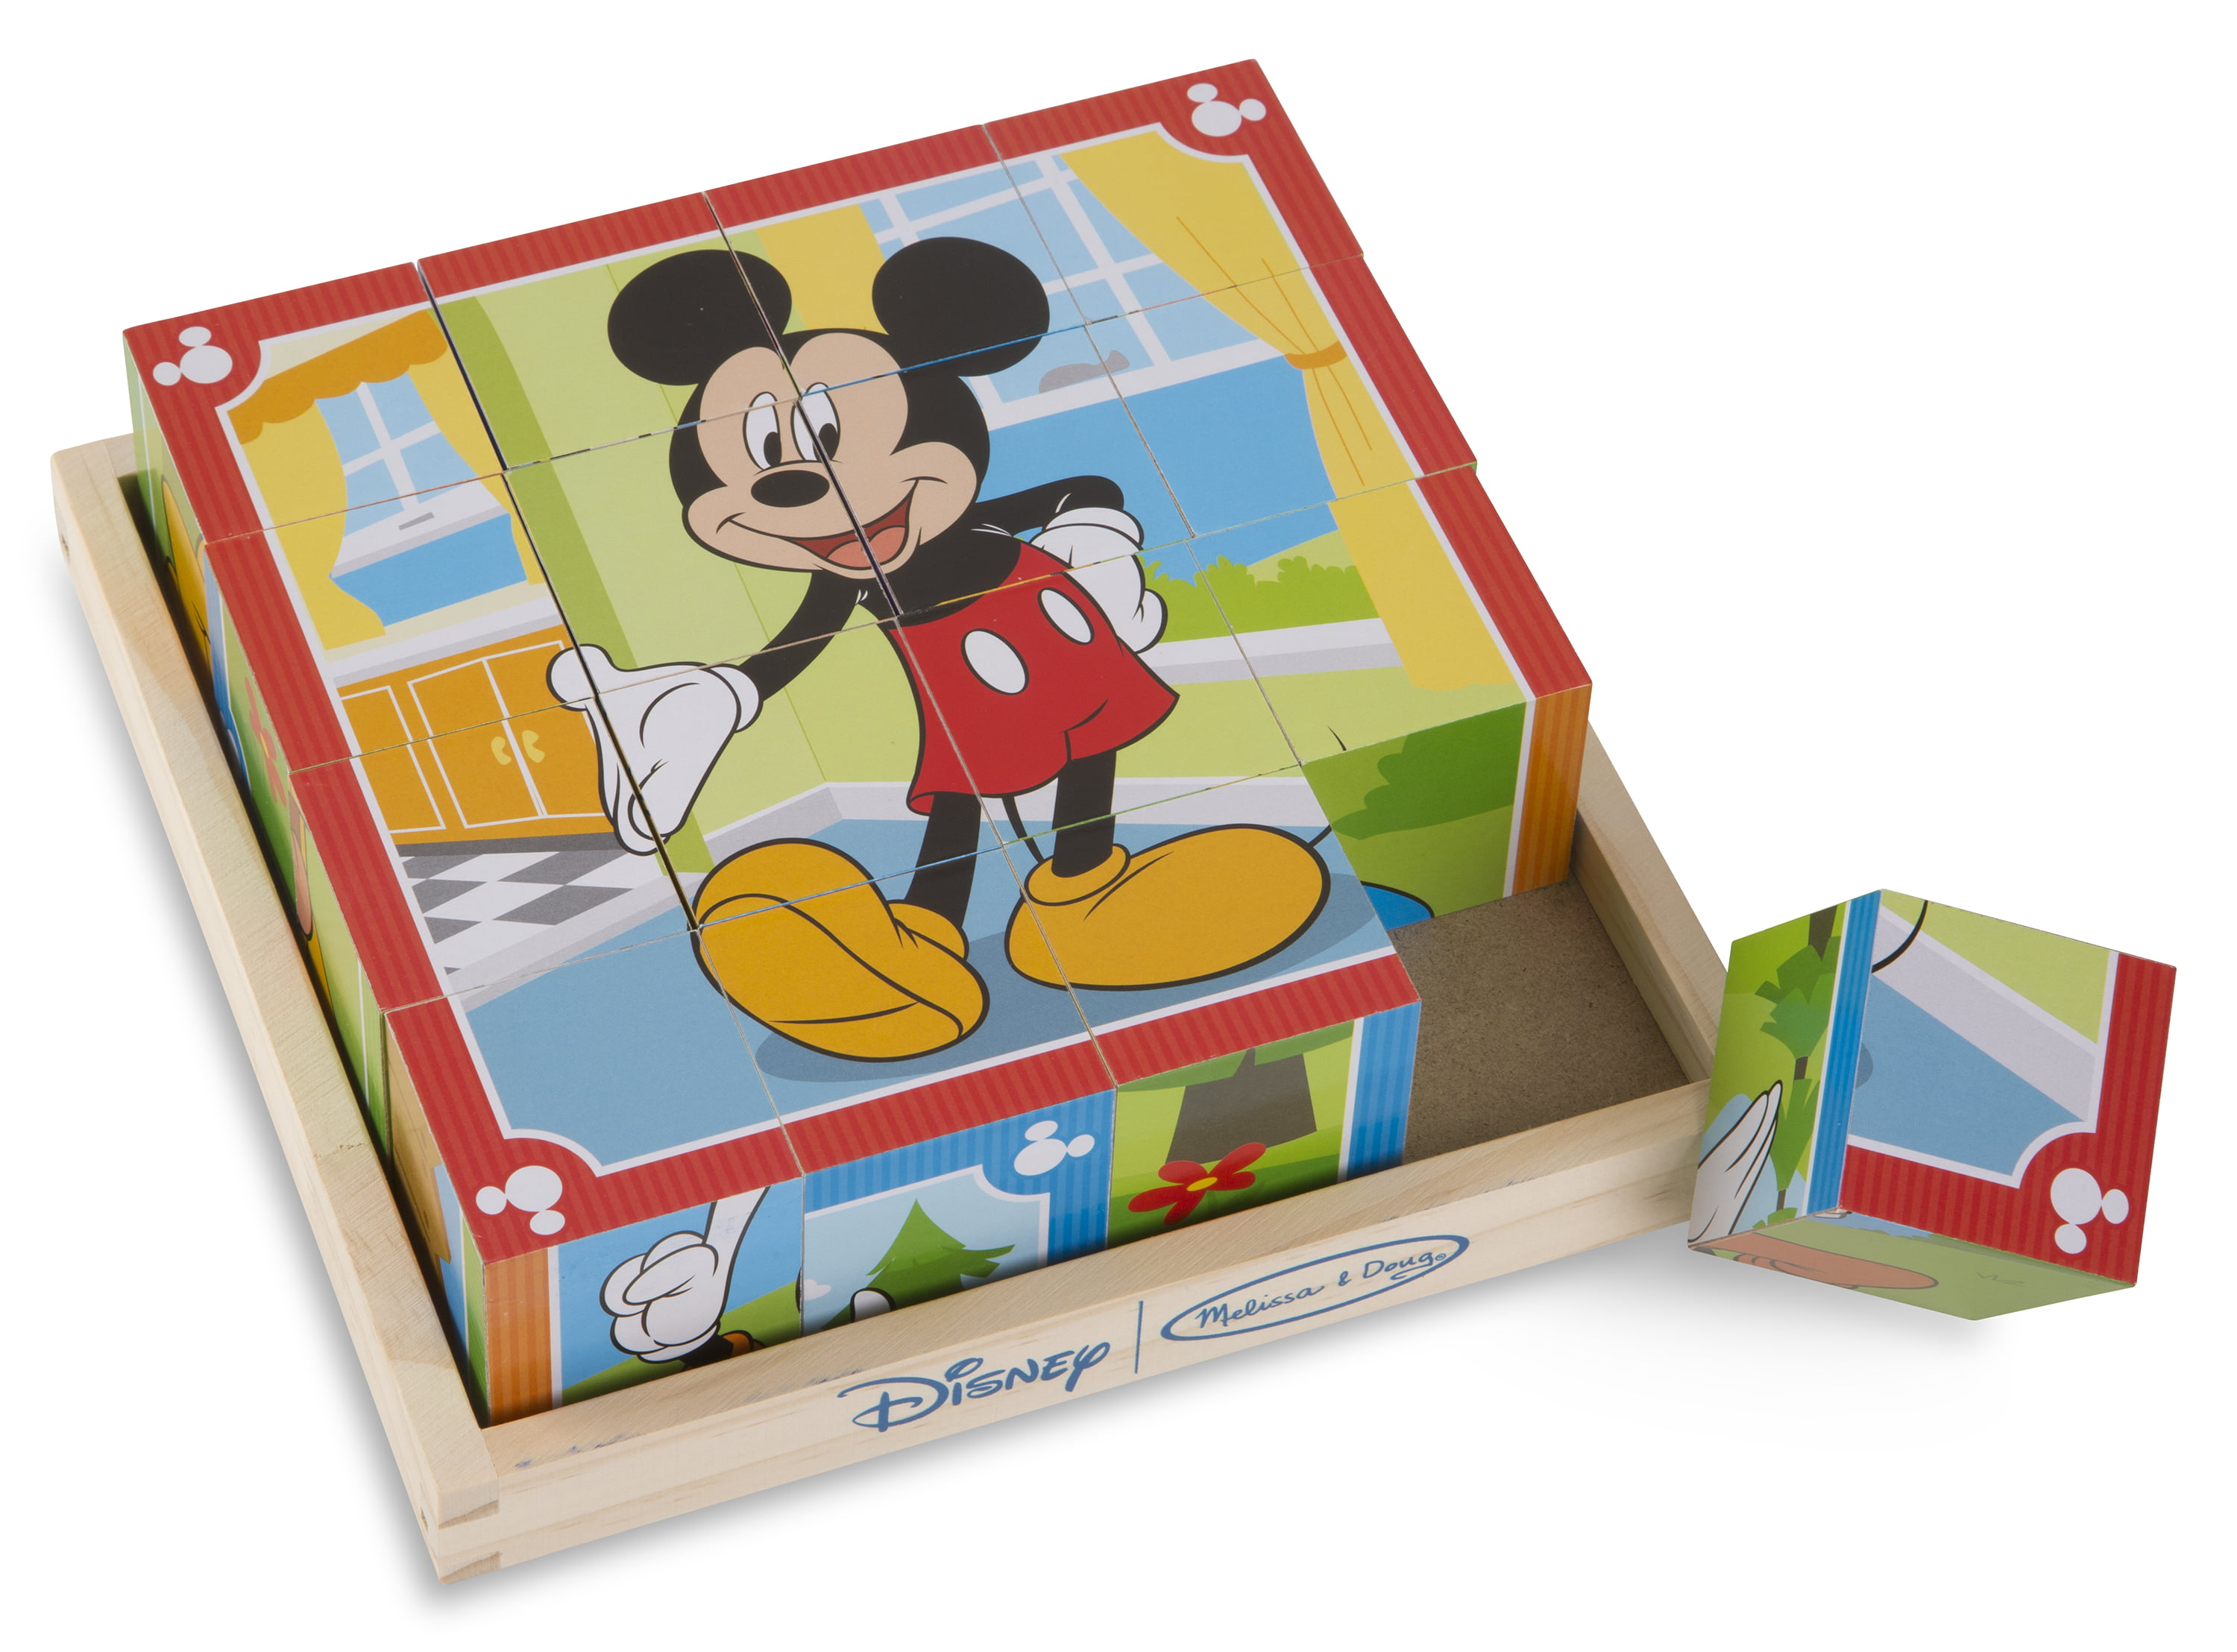 Melissa & Doug Disney Mickey Mouse Cube Puzzle With Storage Tray 6 Puzzles in 1 (16 pcs) by Melissa & Doug